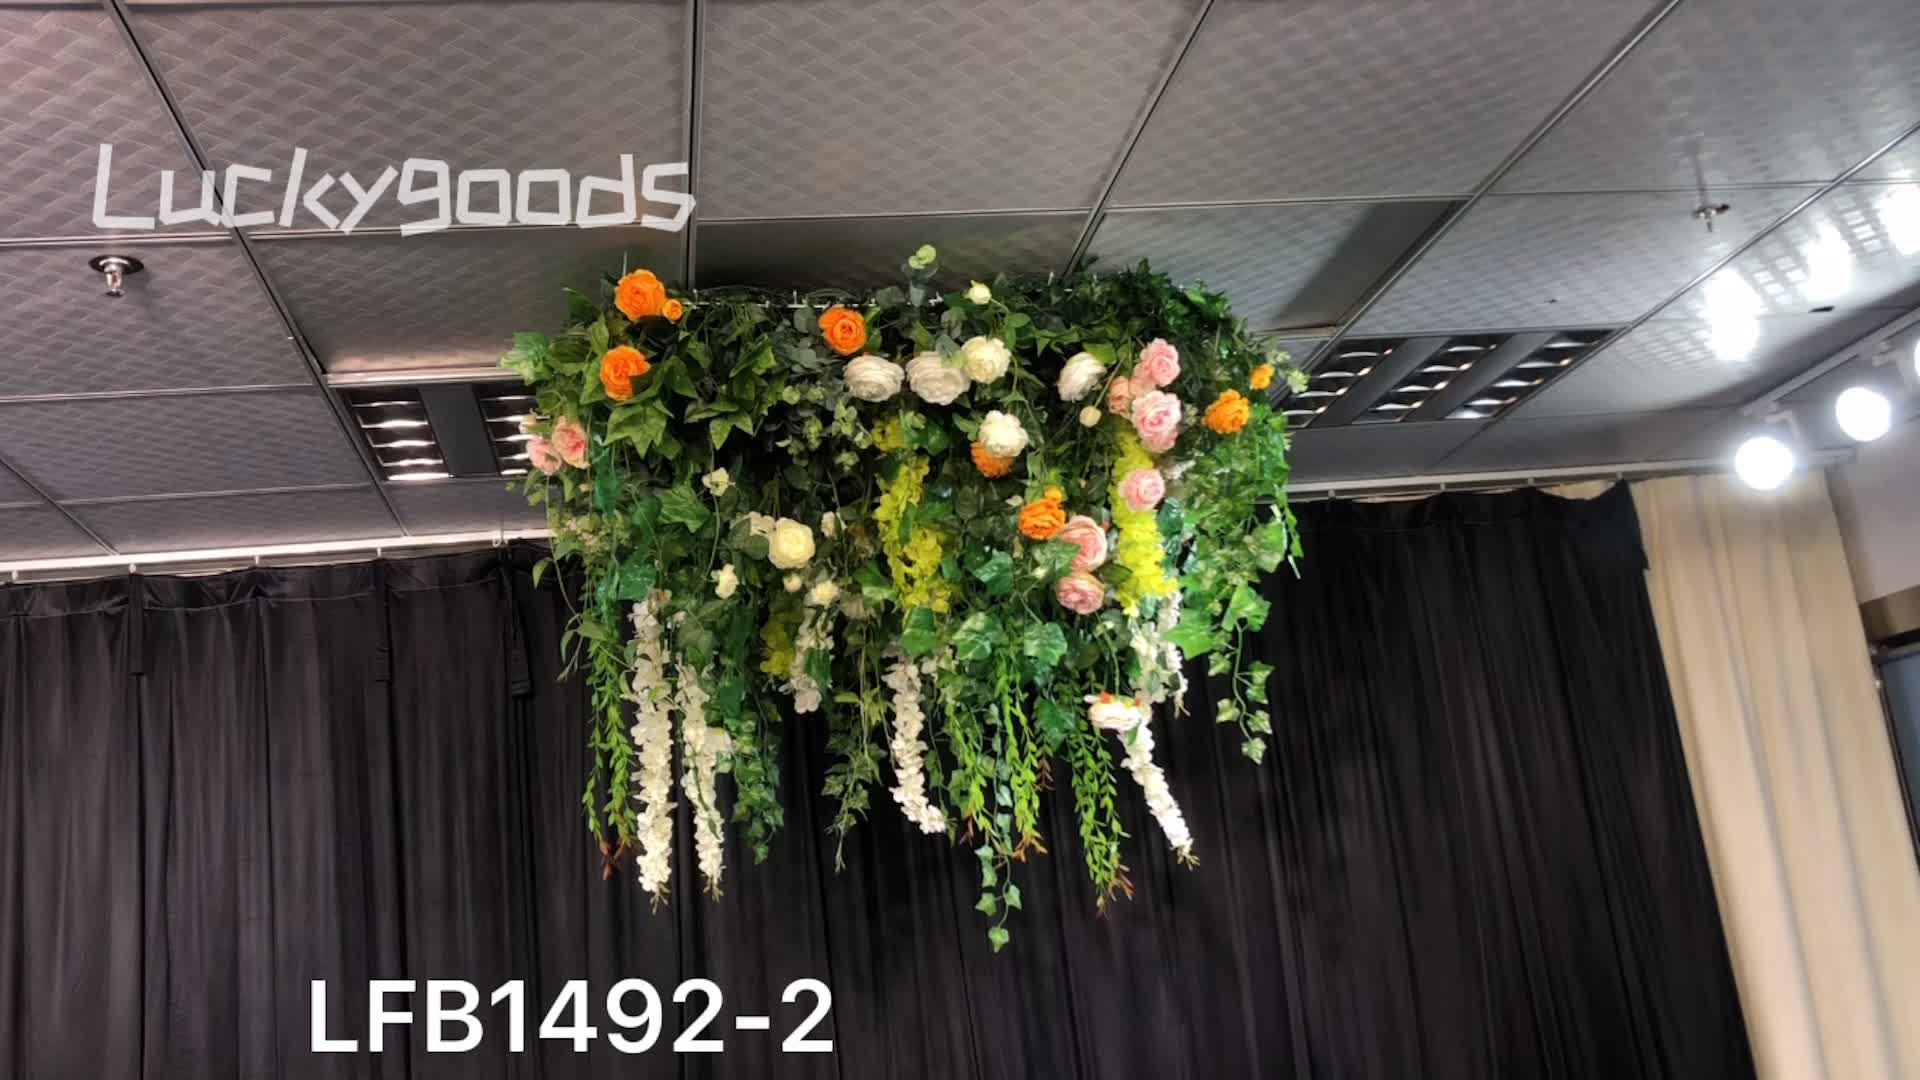 LFB1492-2 Wedding hanging artificial  greenery panels with steel net  for ceiling decoration